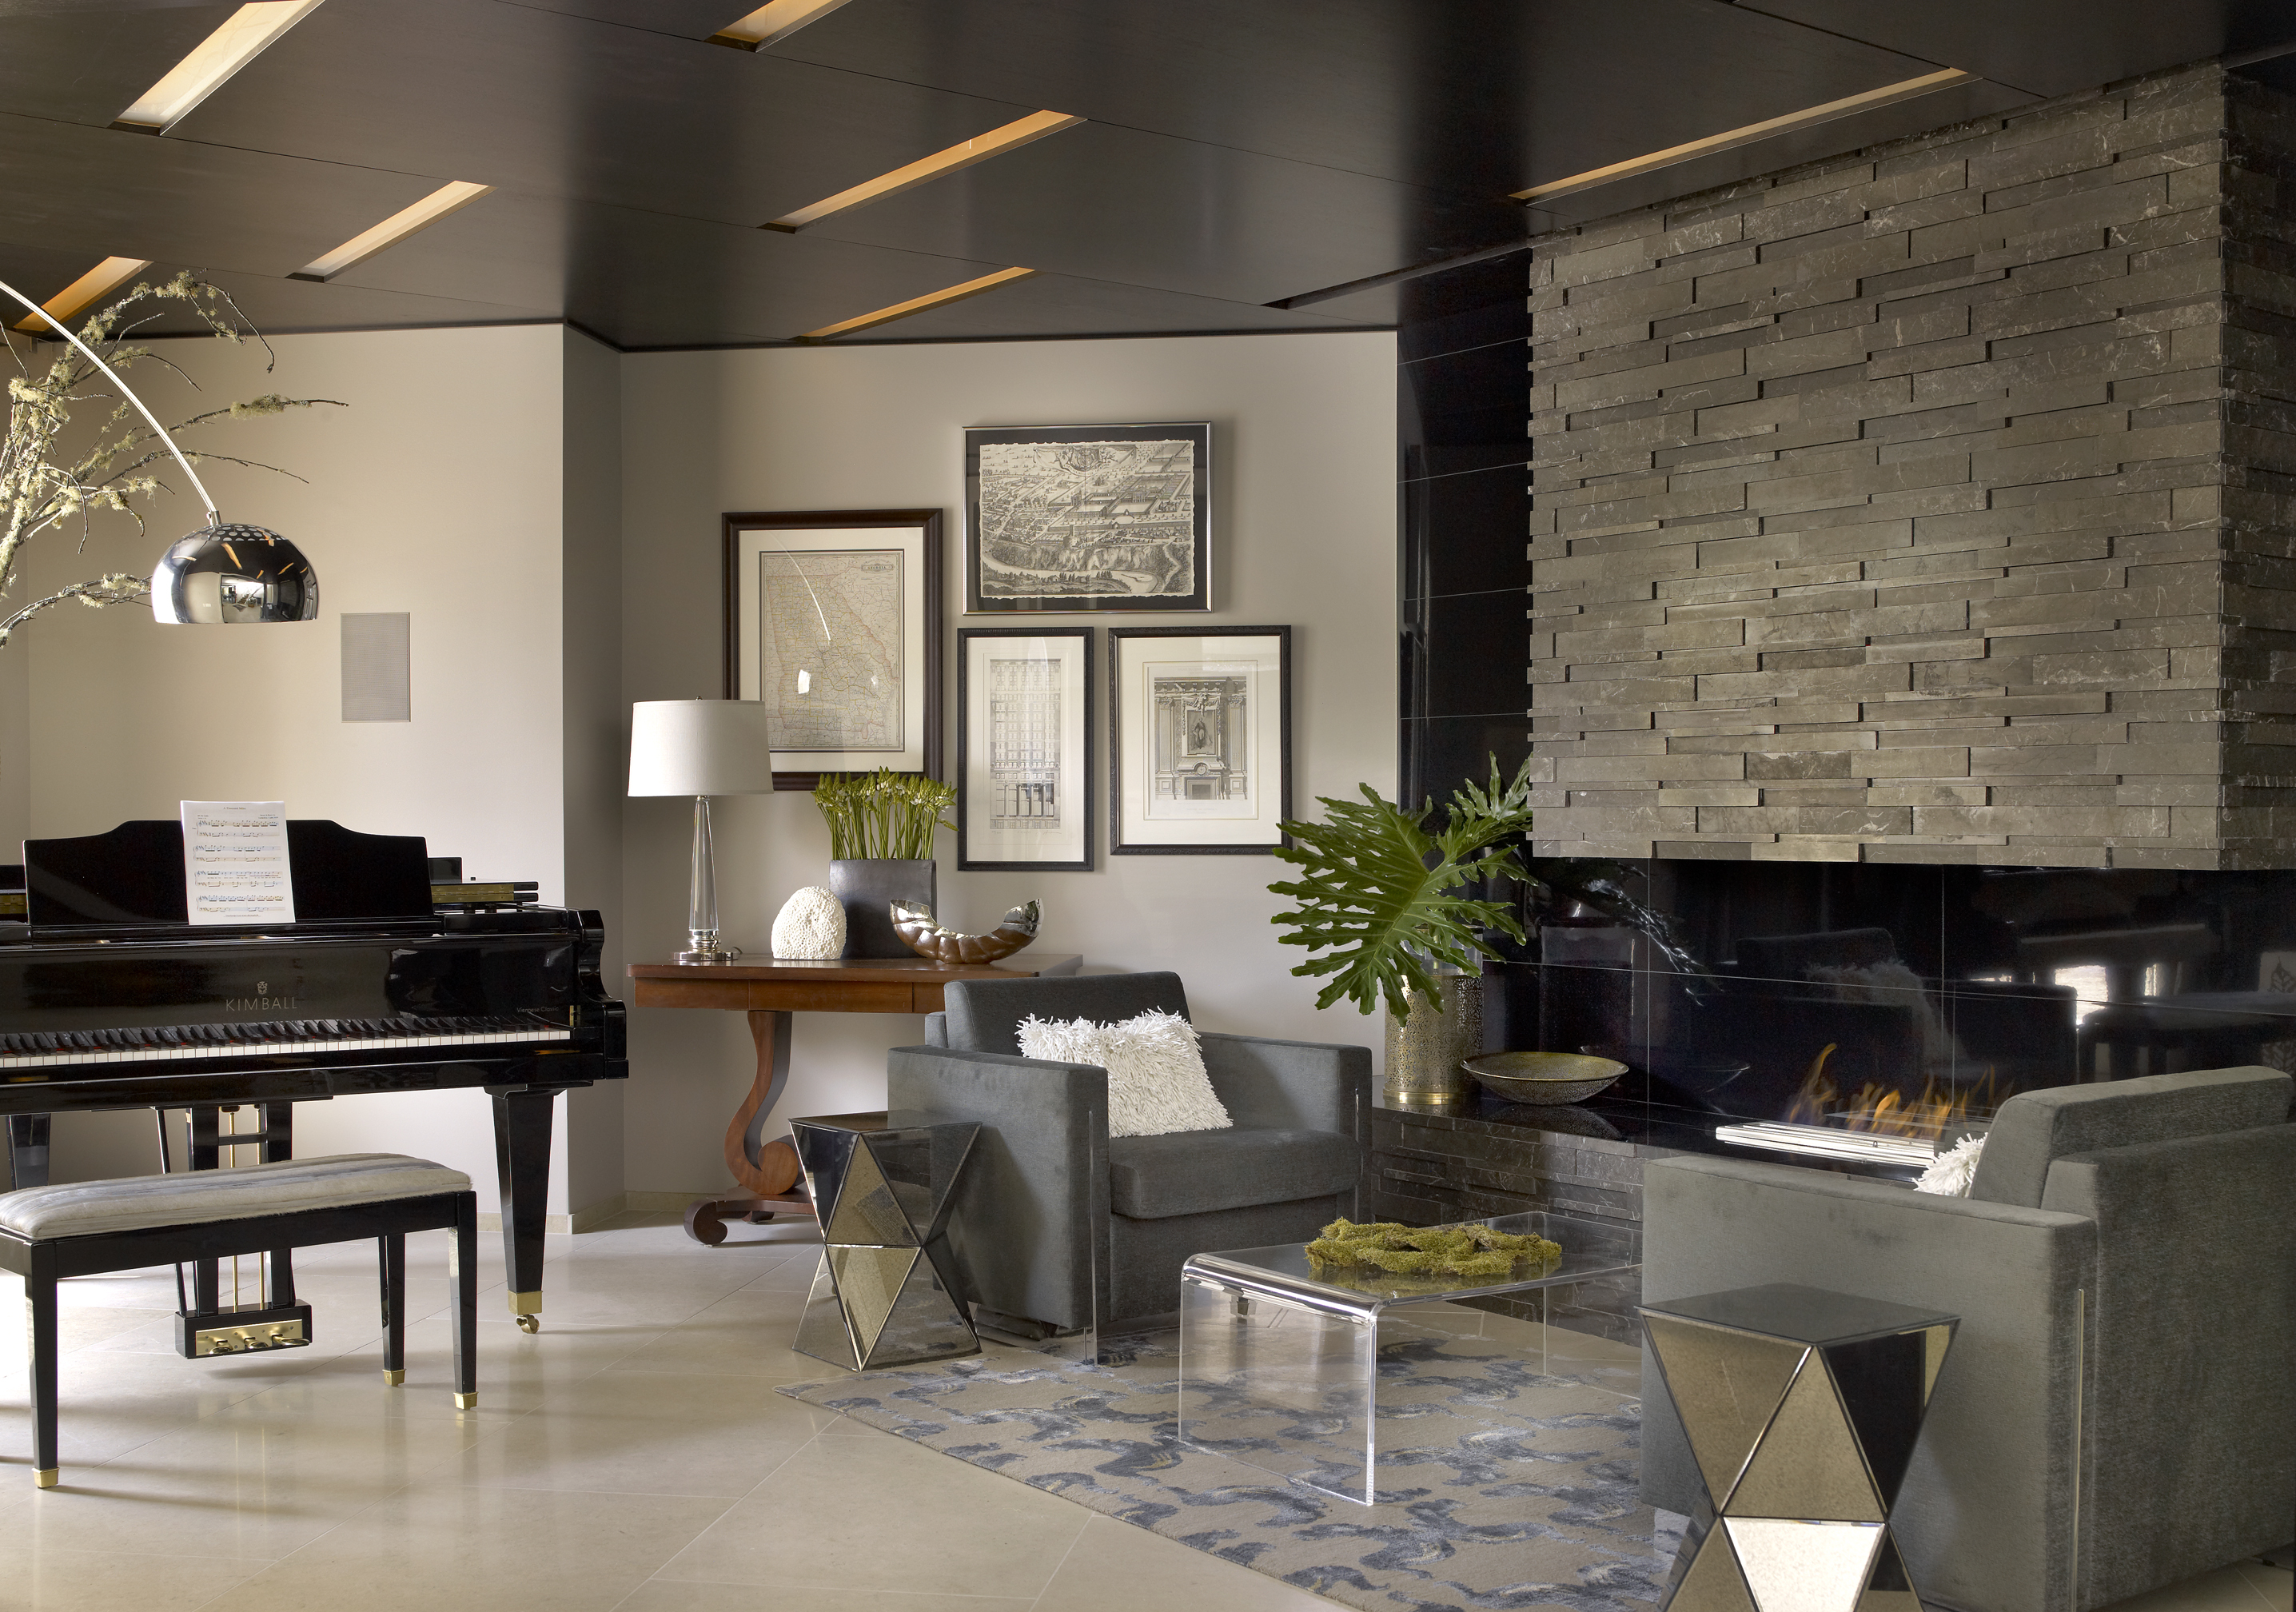 Local architect s home redesign is featured on cover of for Piano room decor